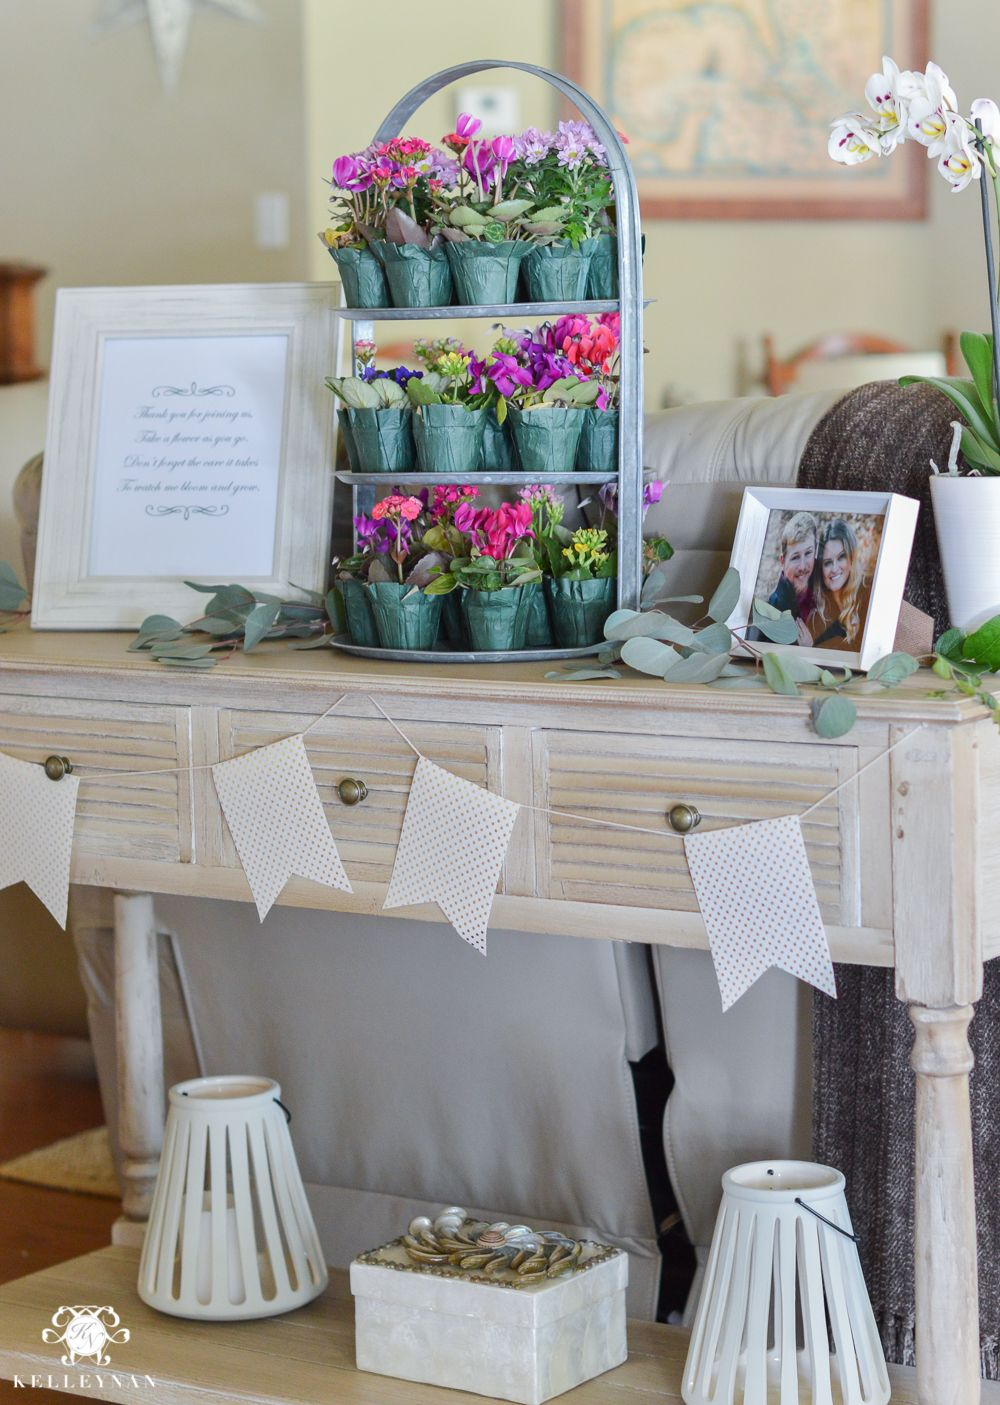 Ideas To Throw An Indoor Garden Party Bridal Shower Indoor Garden Party Garden Party Bridal Shower Bridal Shower